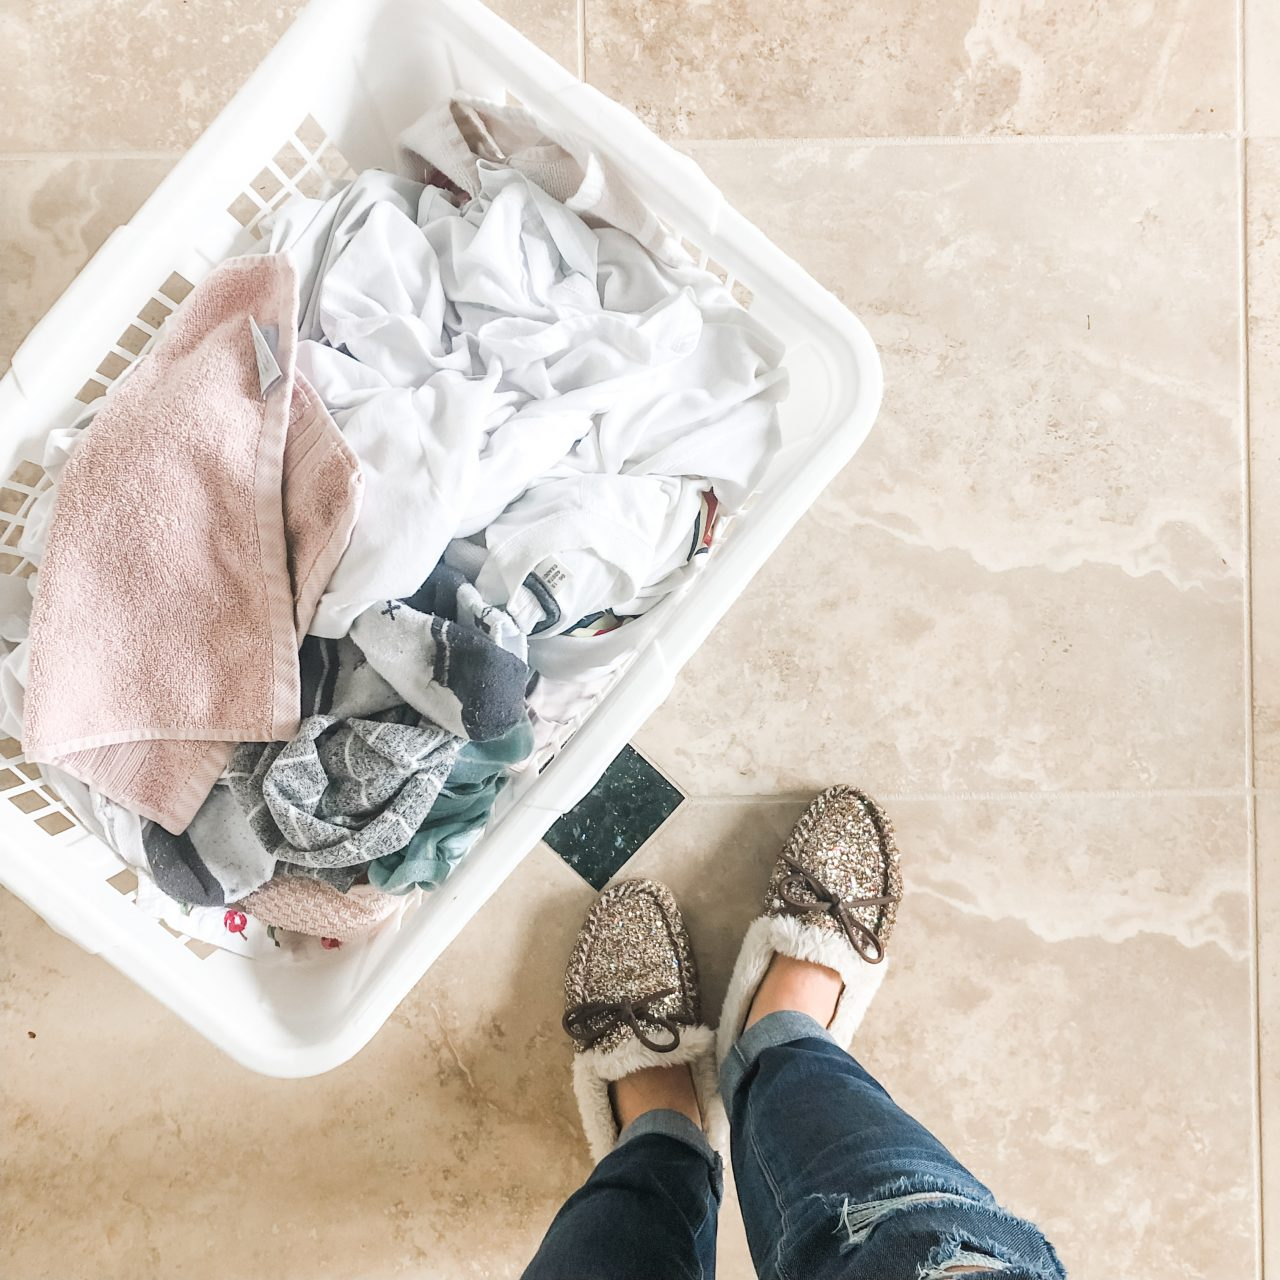 NON-TOXIC WAYS TO DO LAUNDRY